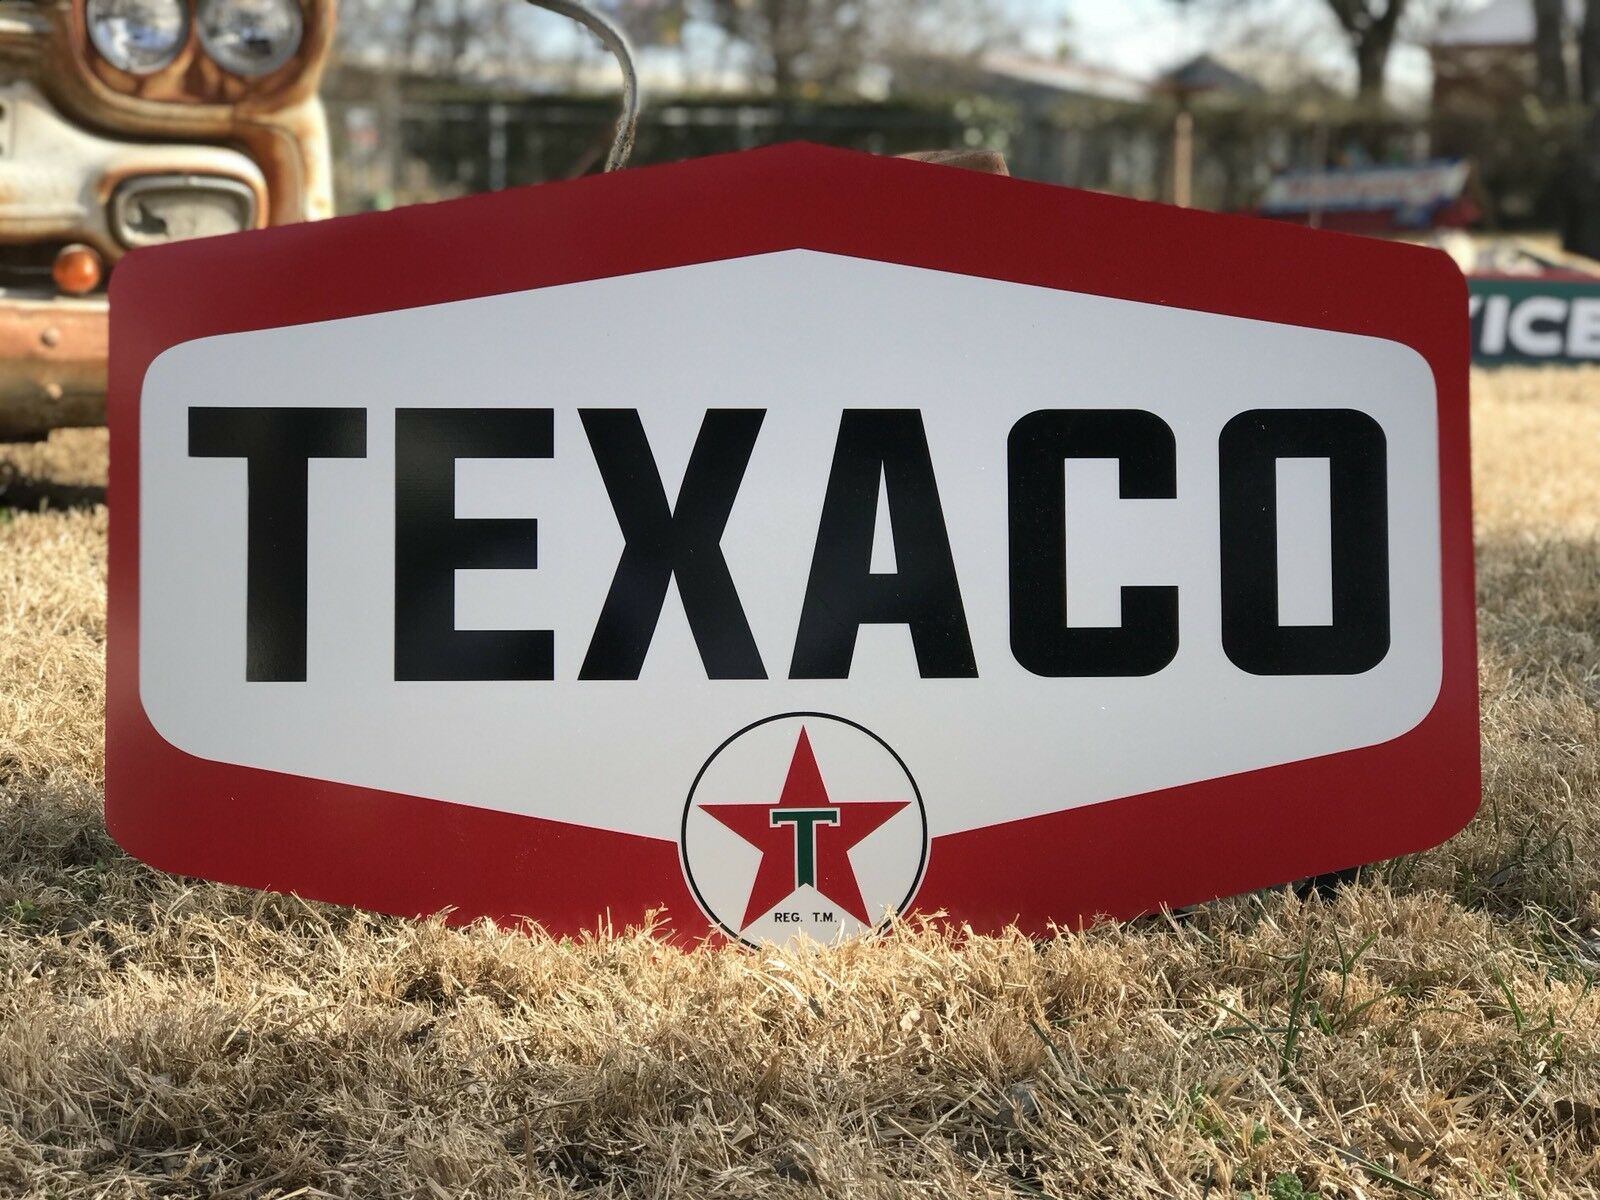 VINTAGE STYLE METAL SIGN Texaco Motor Oil Laser Cut Out Garage  16.9x23.